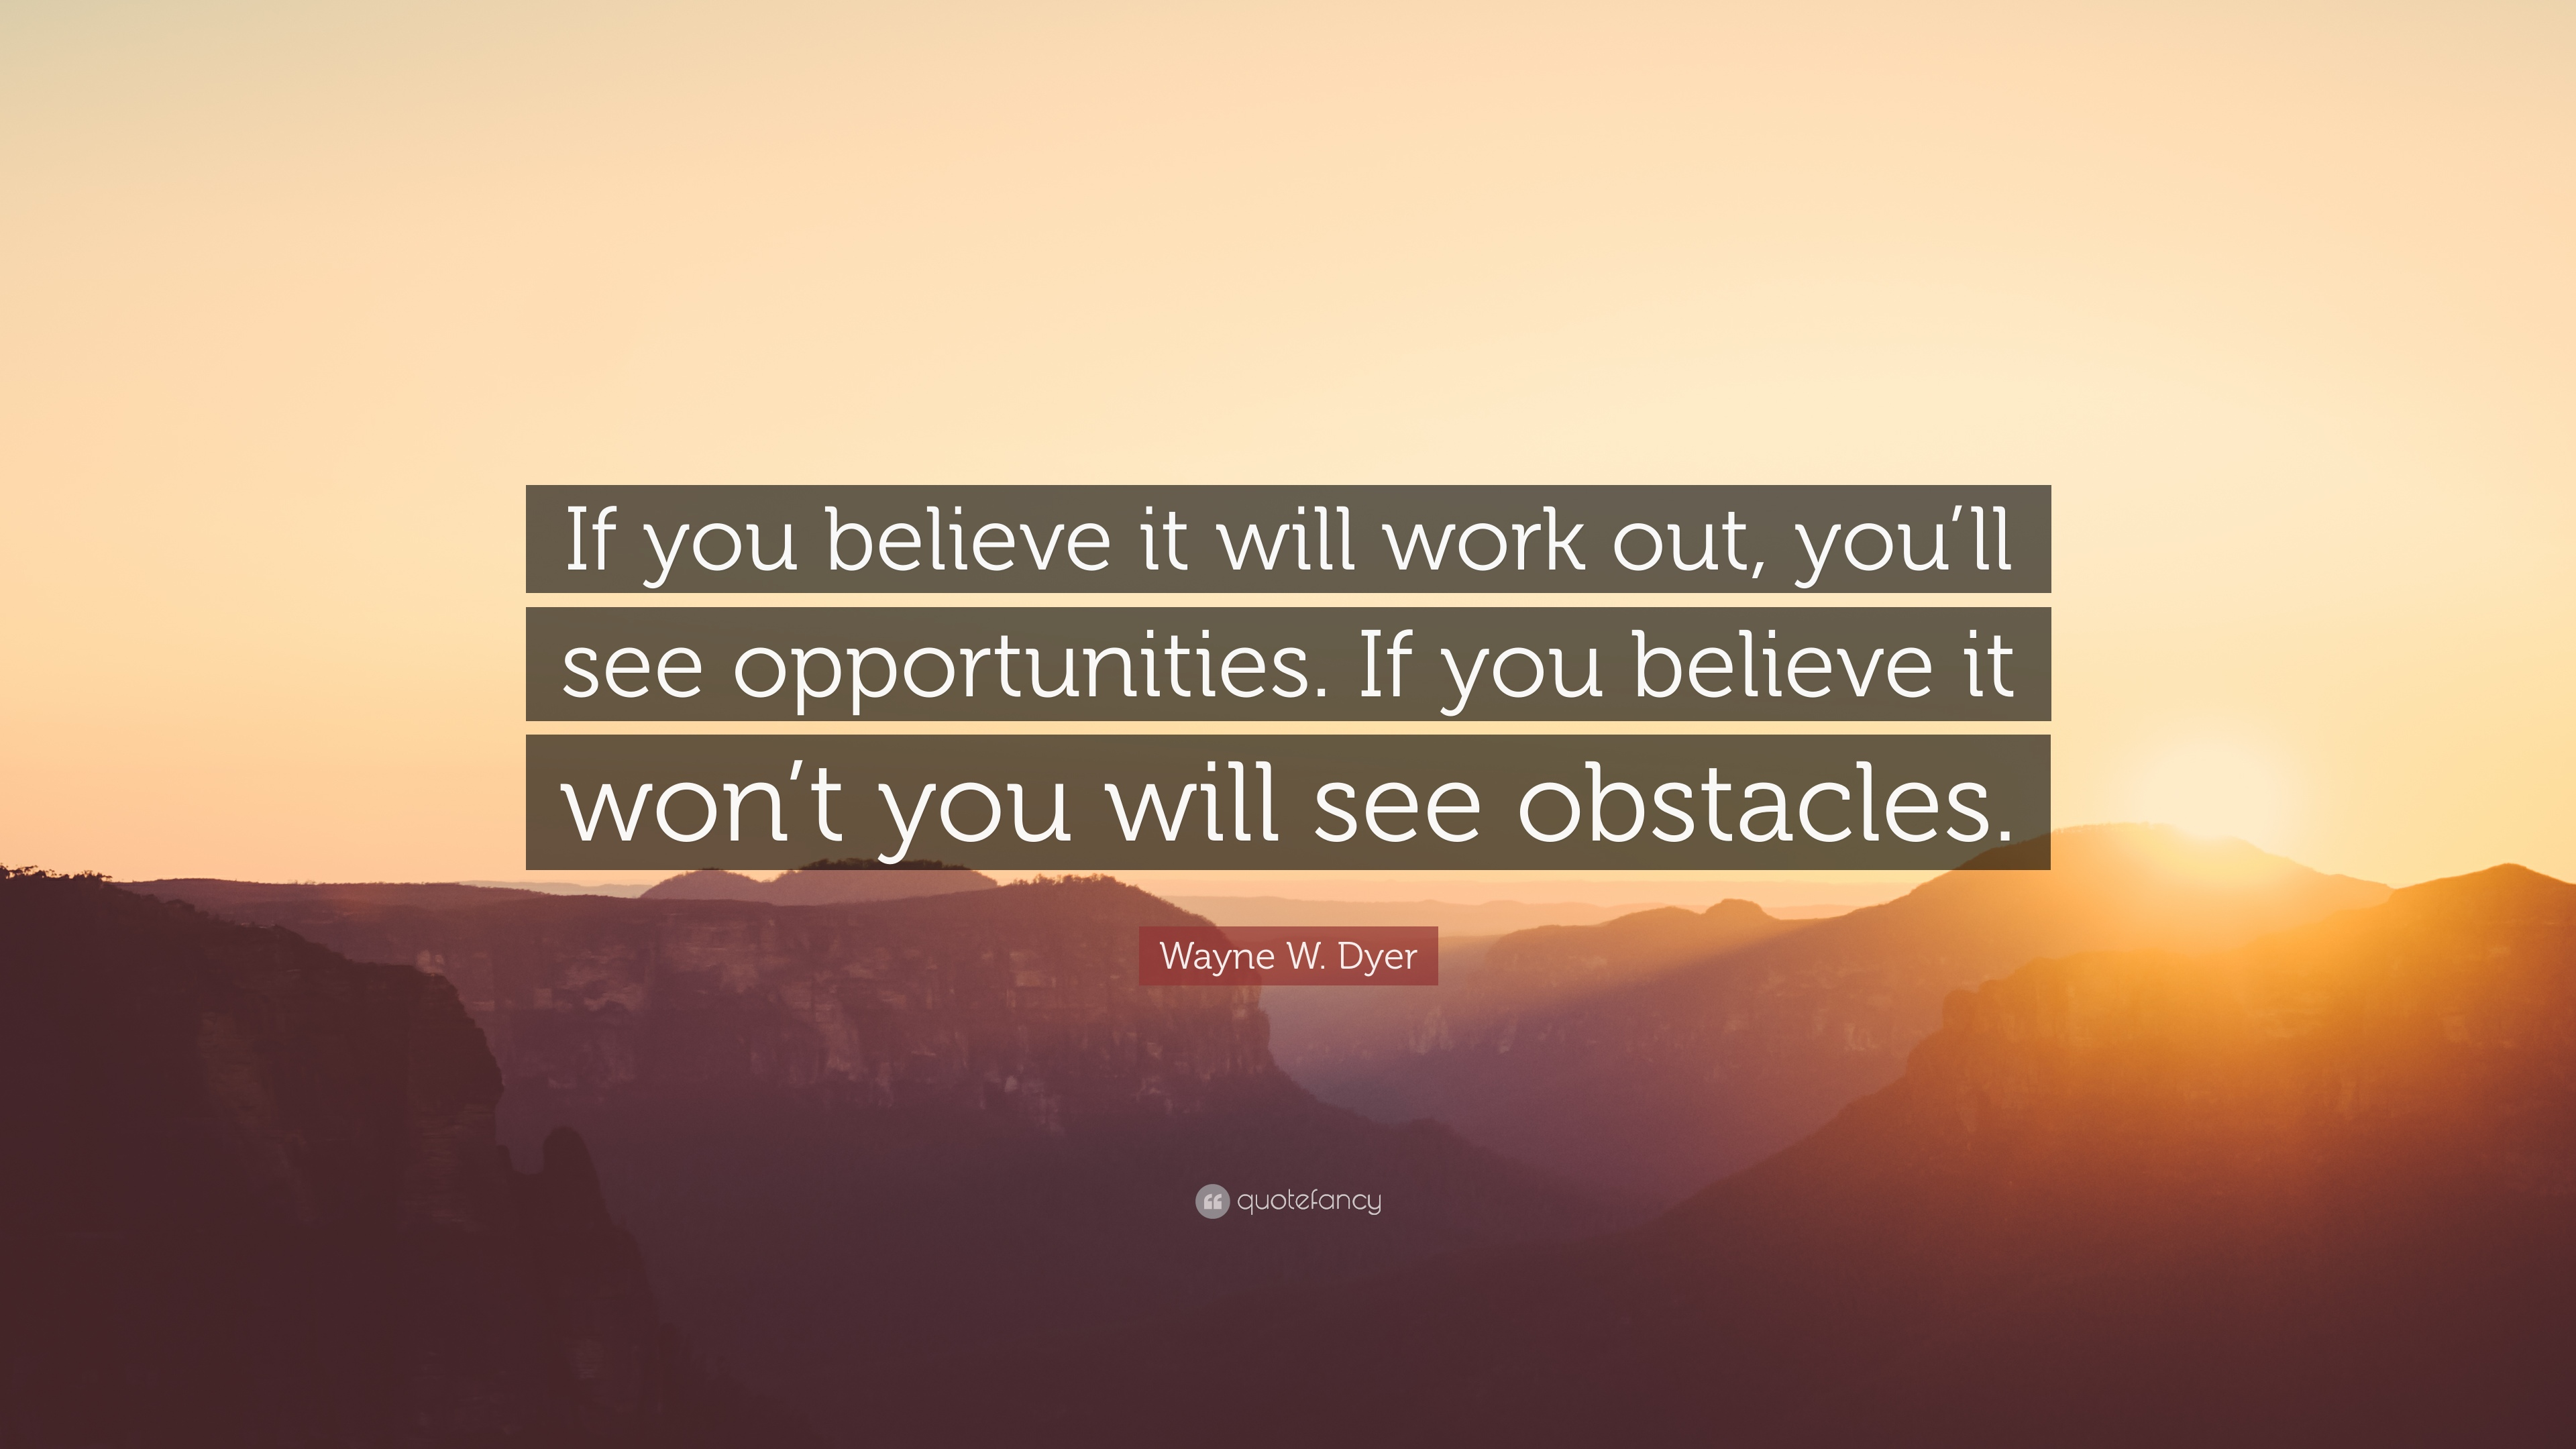 1744080-Wayne-W-Dyer-Quote-If-you-believe-it-will-work-out-you-ll-see.jpg